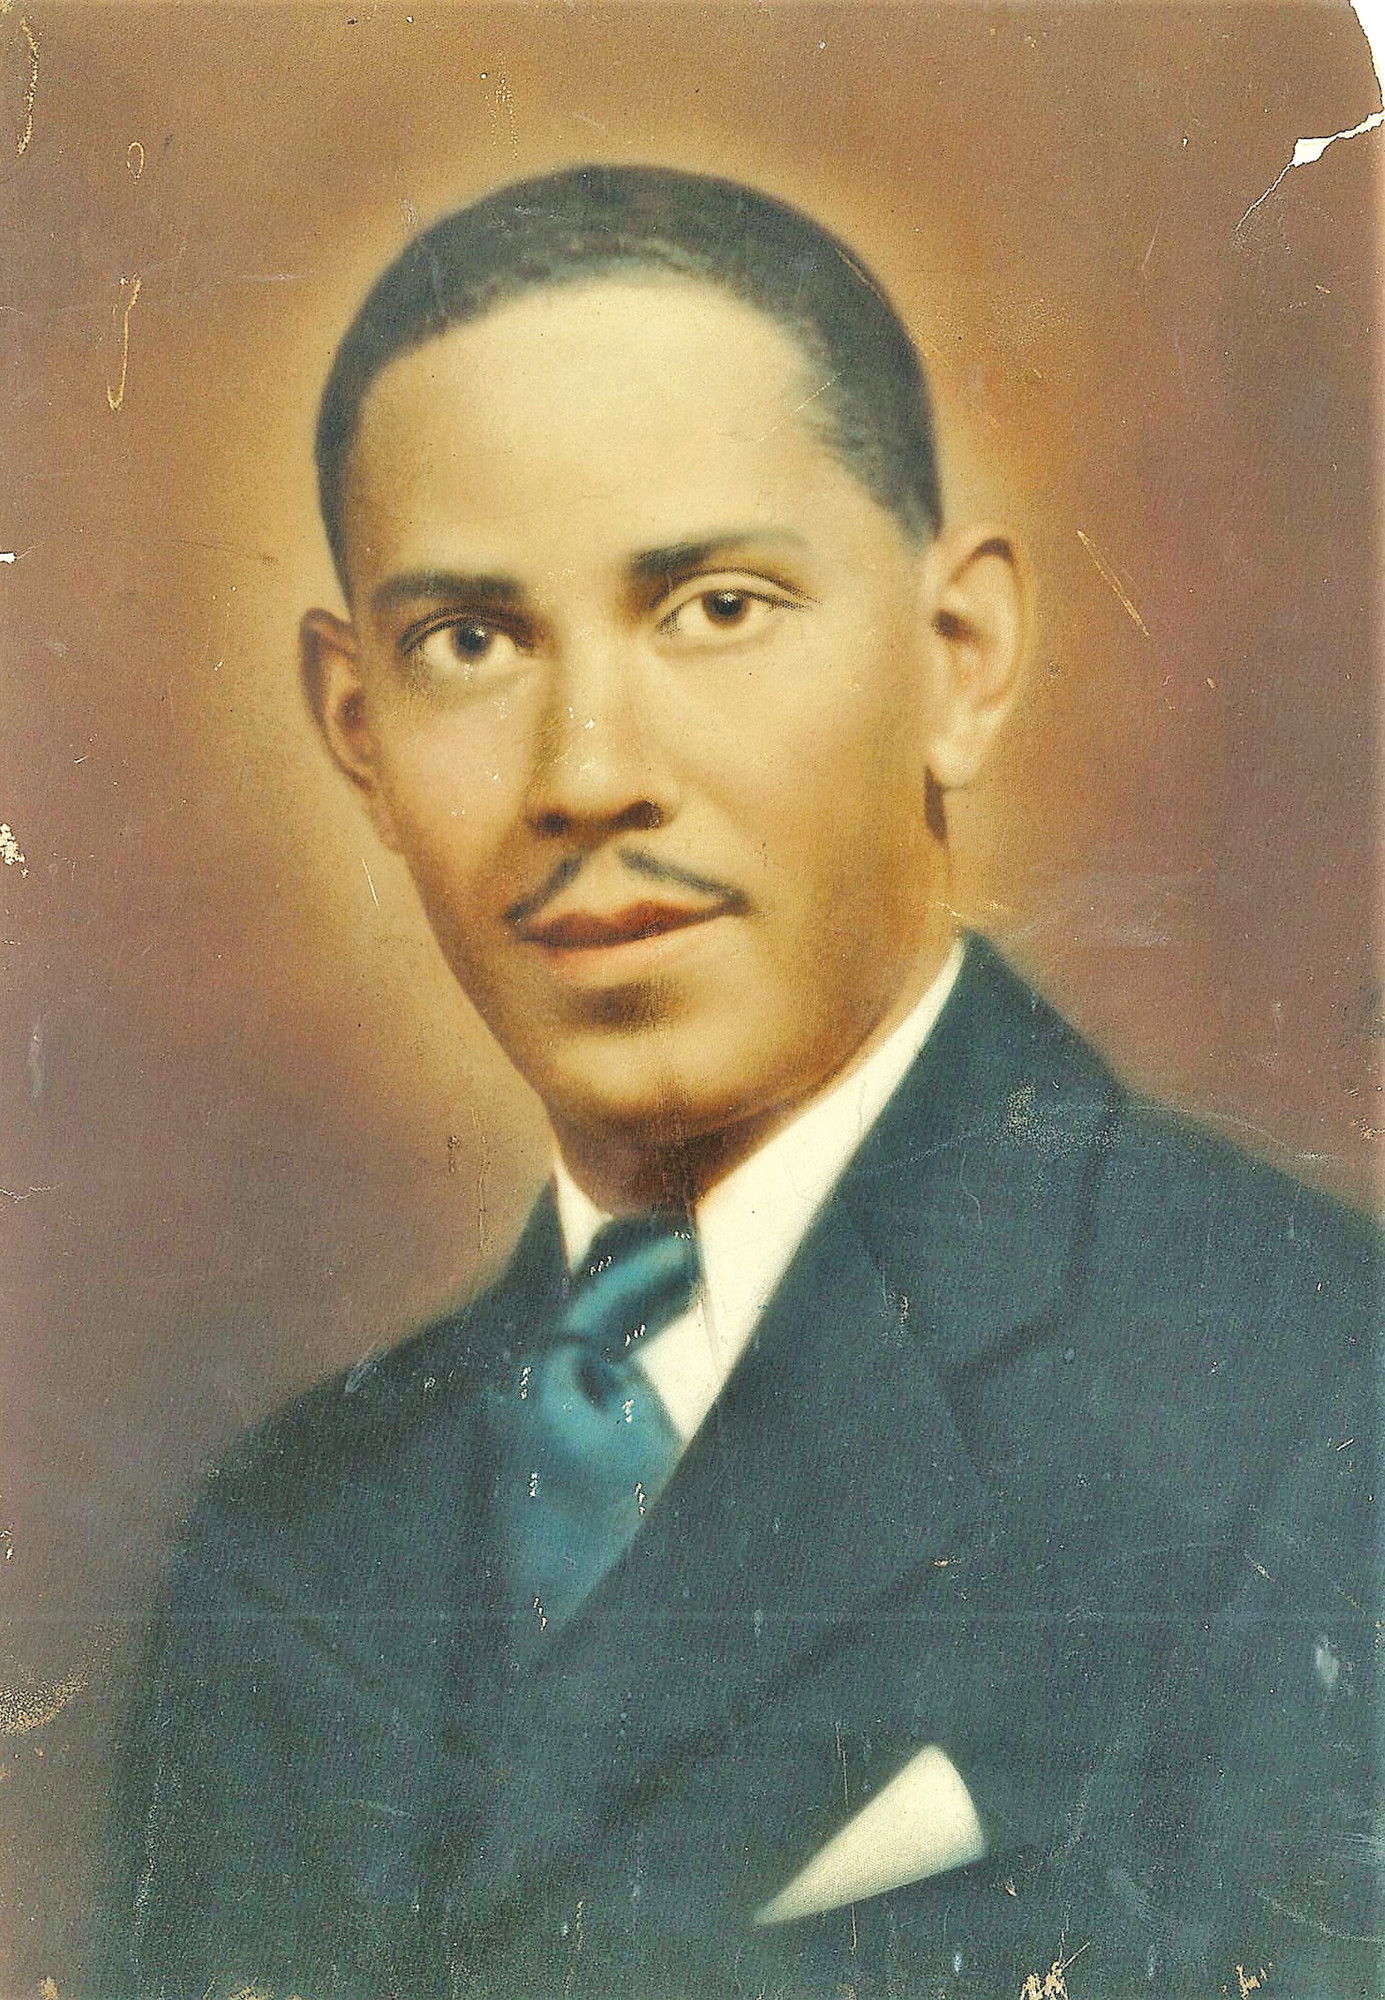 Dr. B. T. Williams served Sumter's black community as a dentist for many years and also was active in civil rights causes. He served as treasurer of the South Carolina State NAACP.